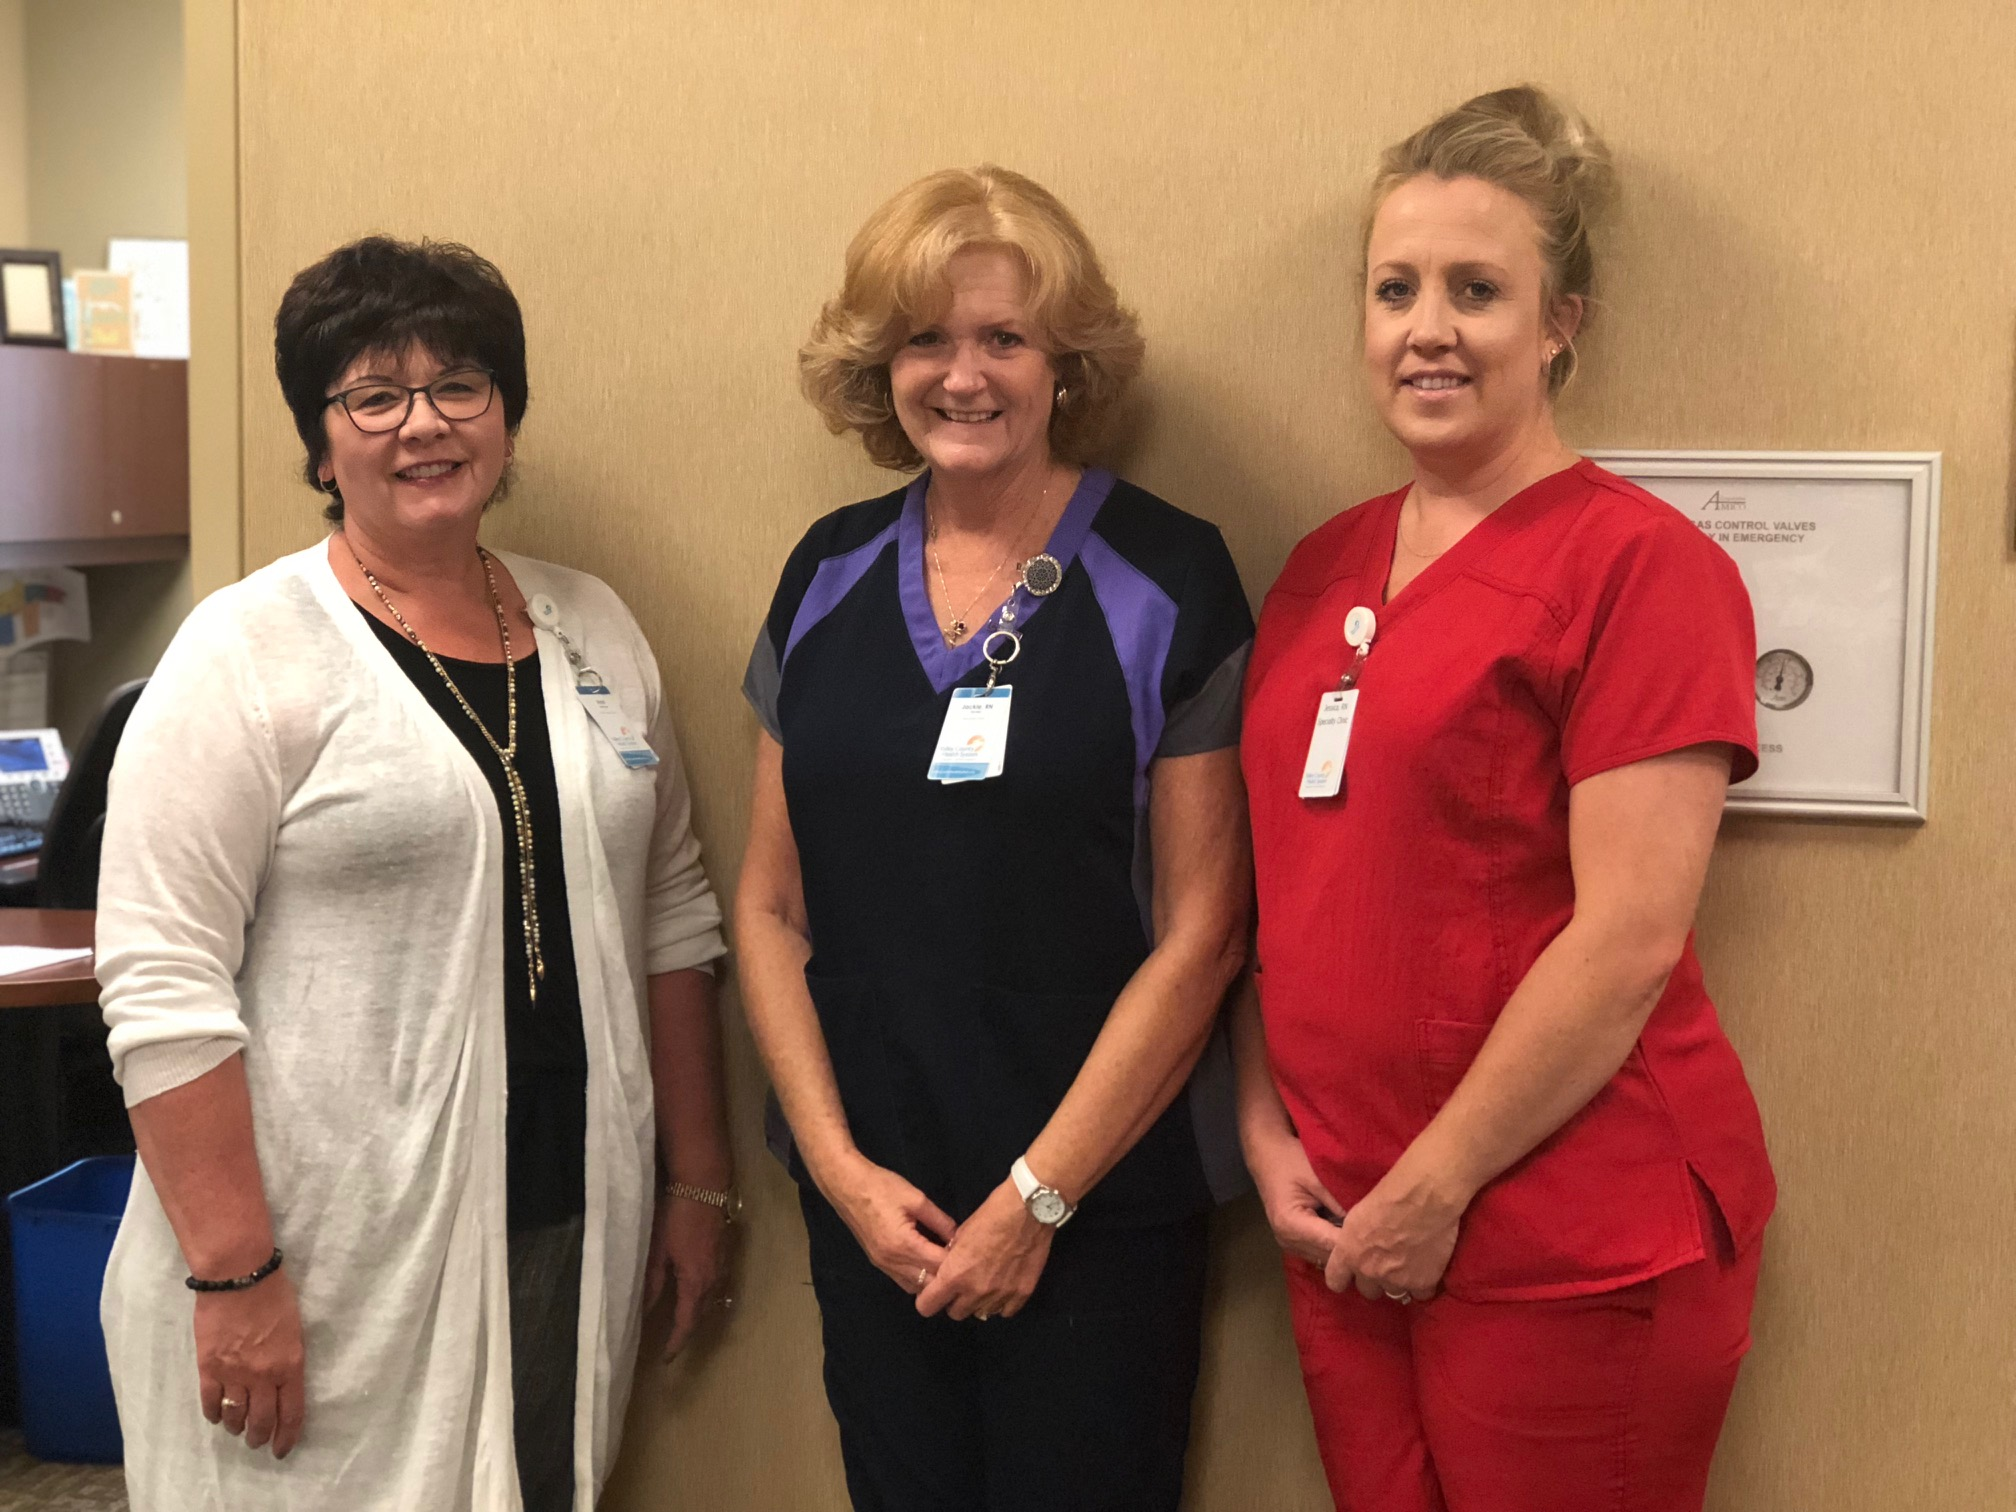 Kavalec Receives Wound Care Certification Valley County Health System